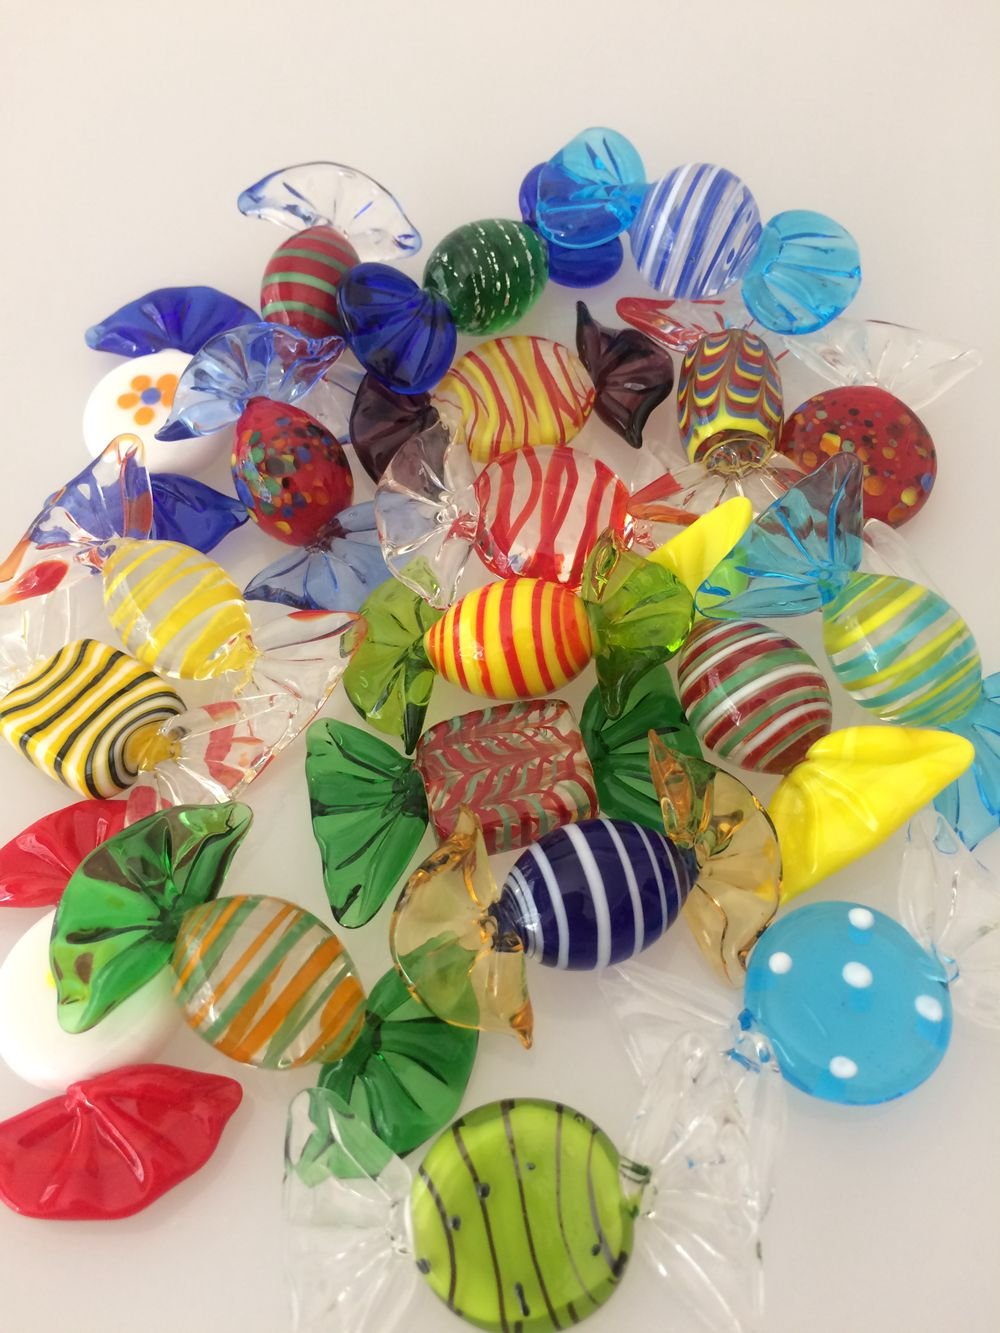 Amazon Zehui Glass Candy Vintage Murano Glass Sweets Candy